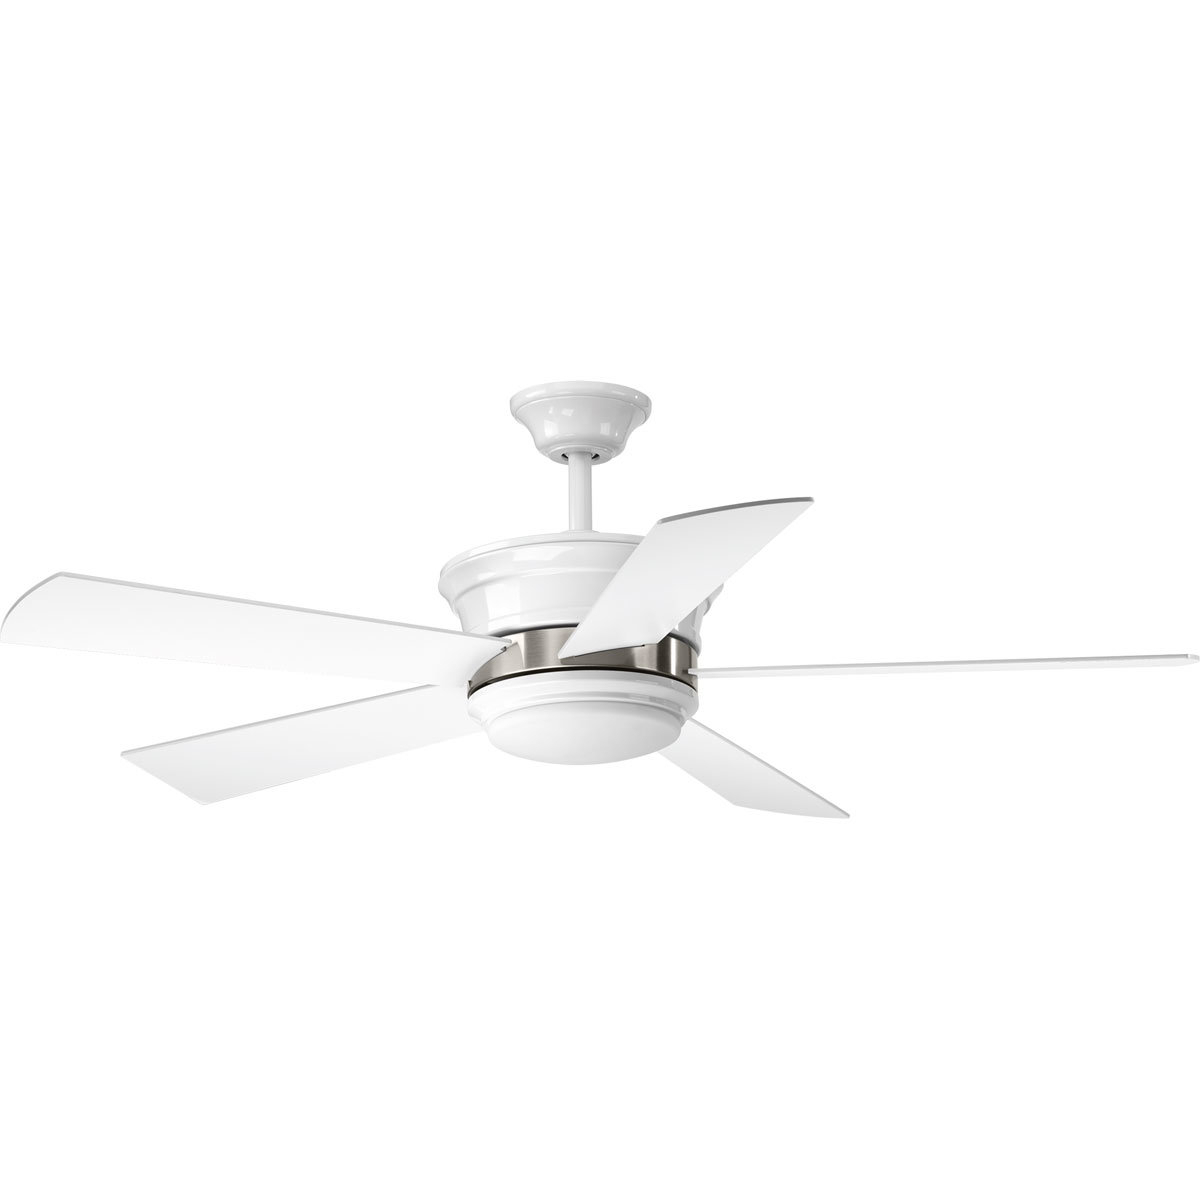 """Favorite 54"""" Seaton 5 Blade Led Ceiling Fan With Remote, Light Kit Included Regarding Creslow 5 Blade Ceiling Fans (View 14 of 20)"""